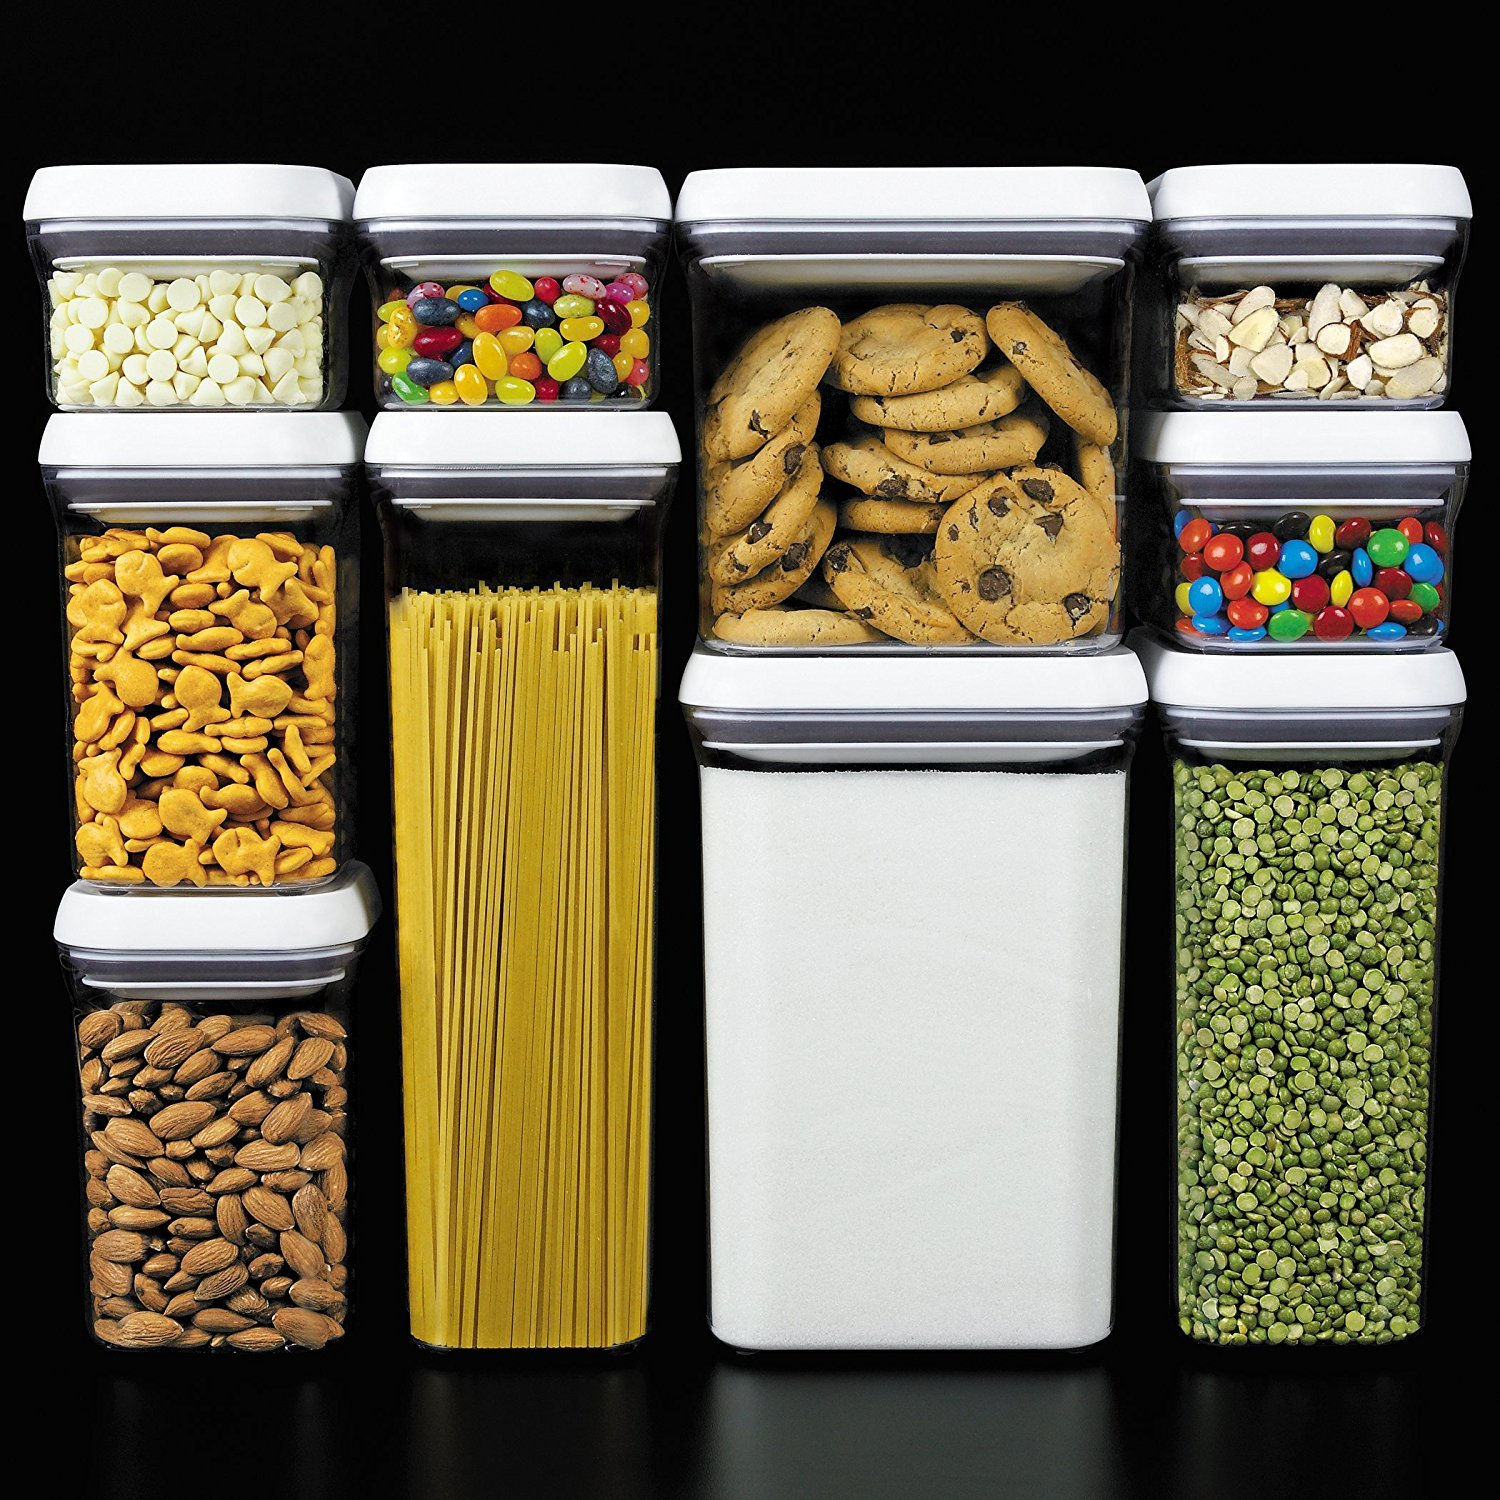 Amazon.com OXO Good Grips 10-Piece Airtight Food Storage POP Container Value Set With 10 Labels Kitchen u0026 Dining & Amazon.com: OXO Good Grips 10-Piece Airtight Food Storage POP ...